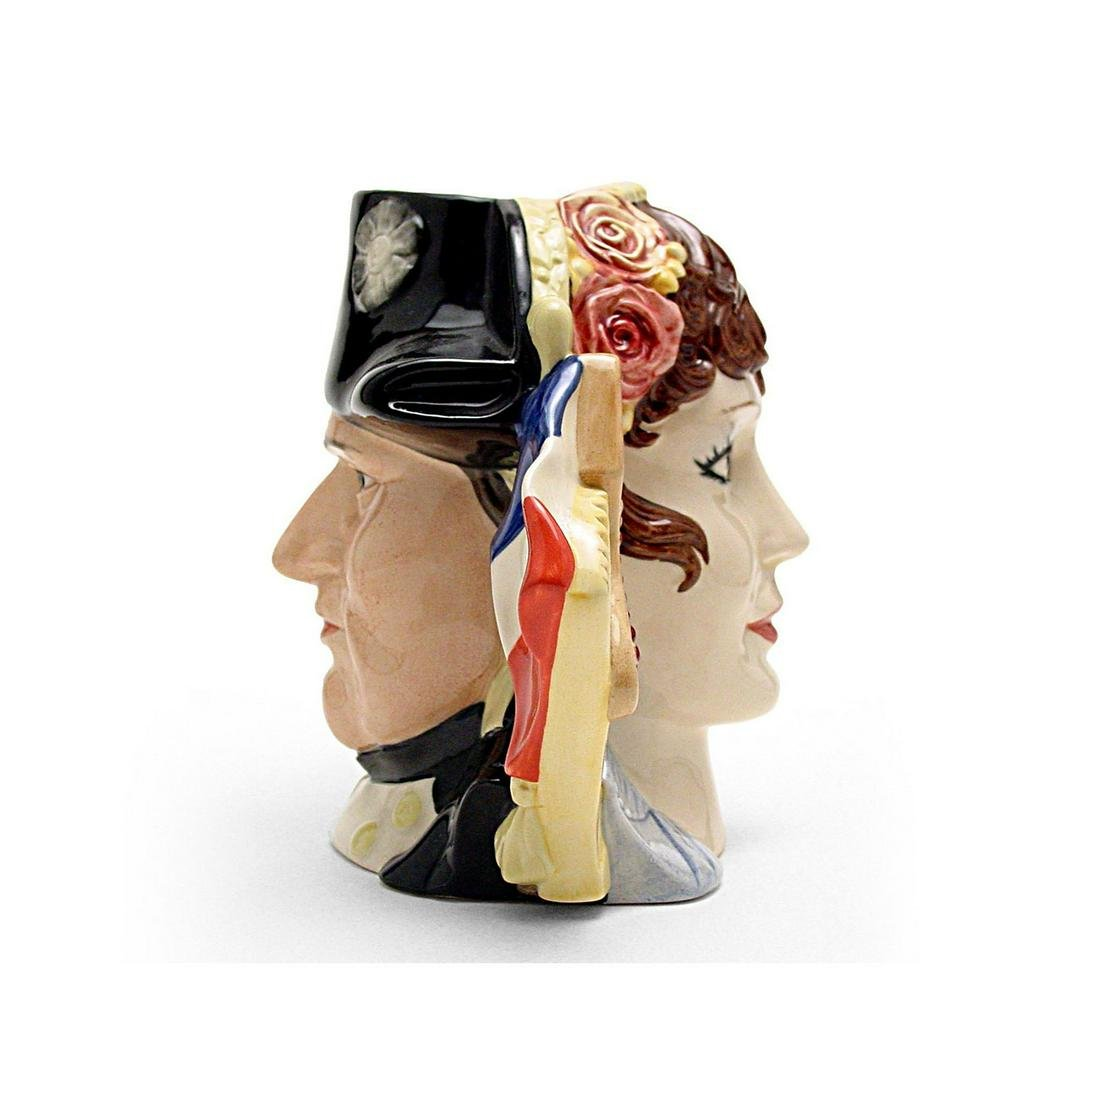 NAPOLEON AND JOSEPHINE D6750 (DOUBLEFACED) - LARGE -